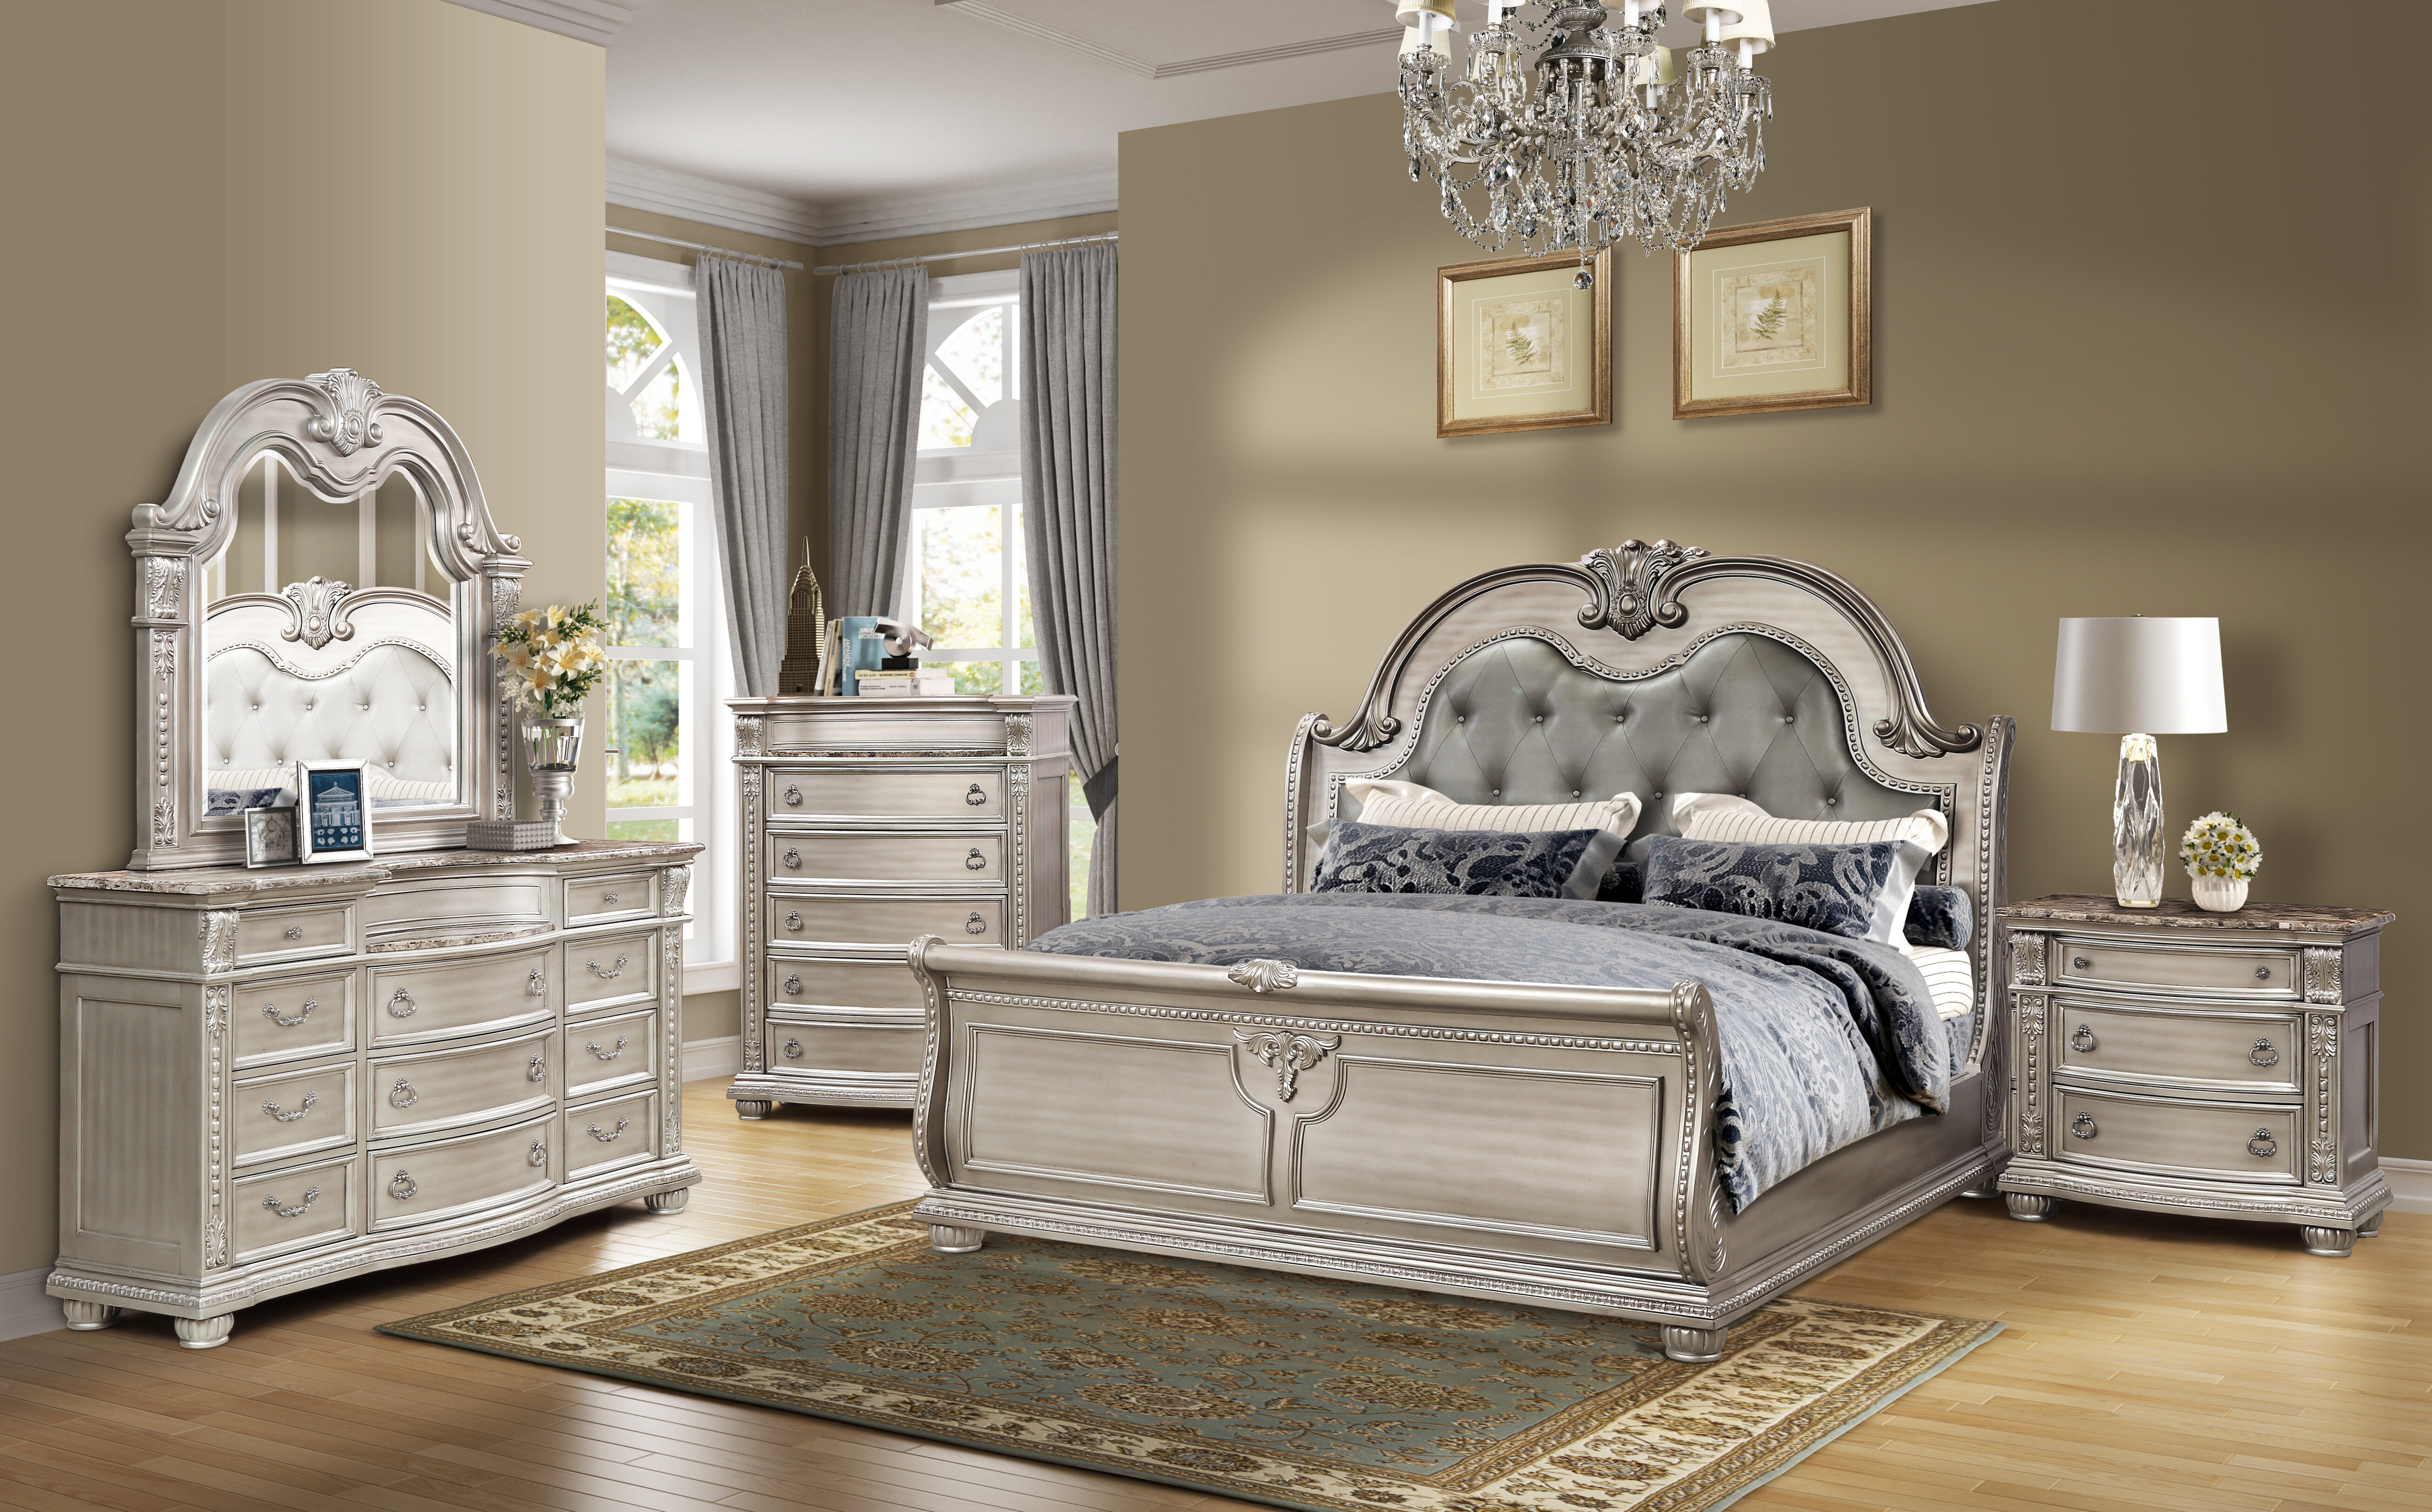 Morven Queen Standard 3 Piece Bedroom Set